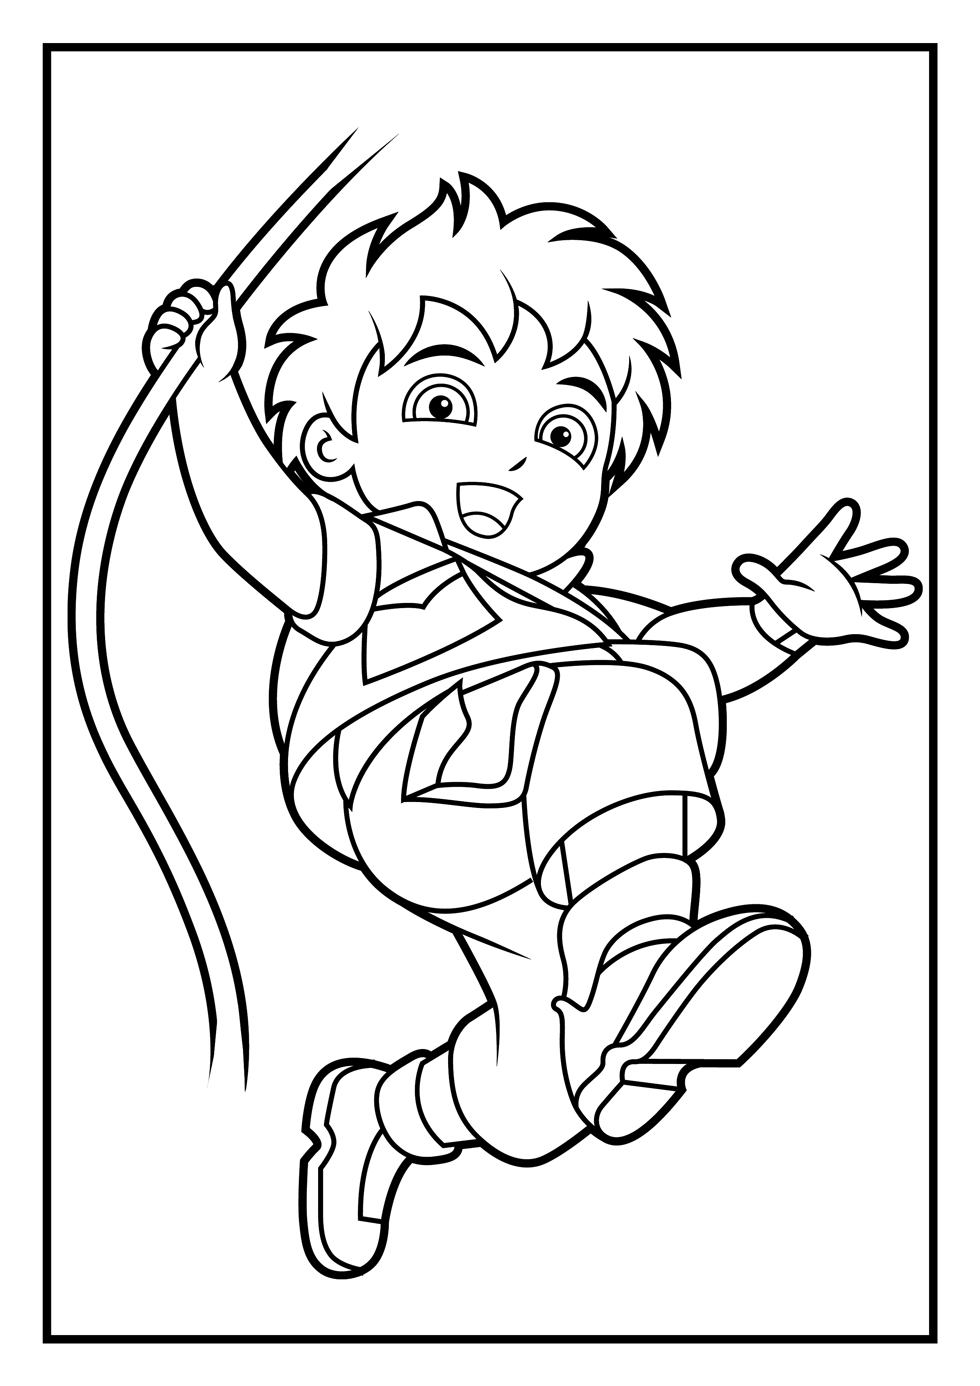 deigo coloring pages - photo#8